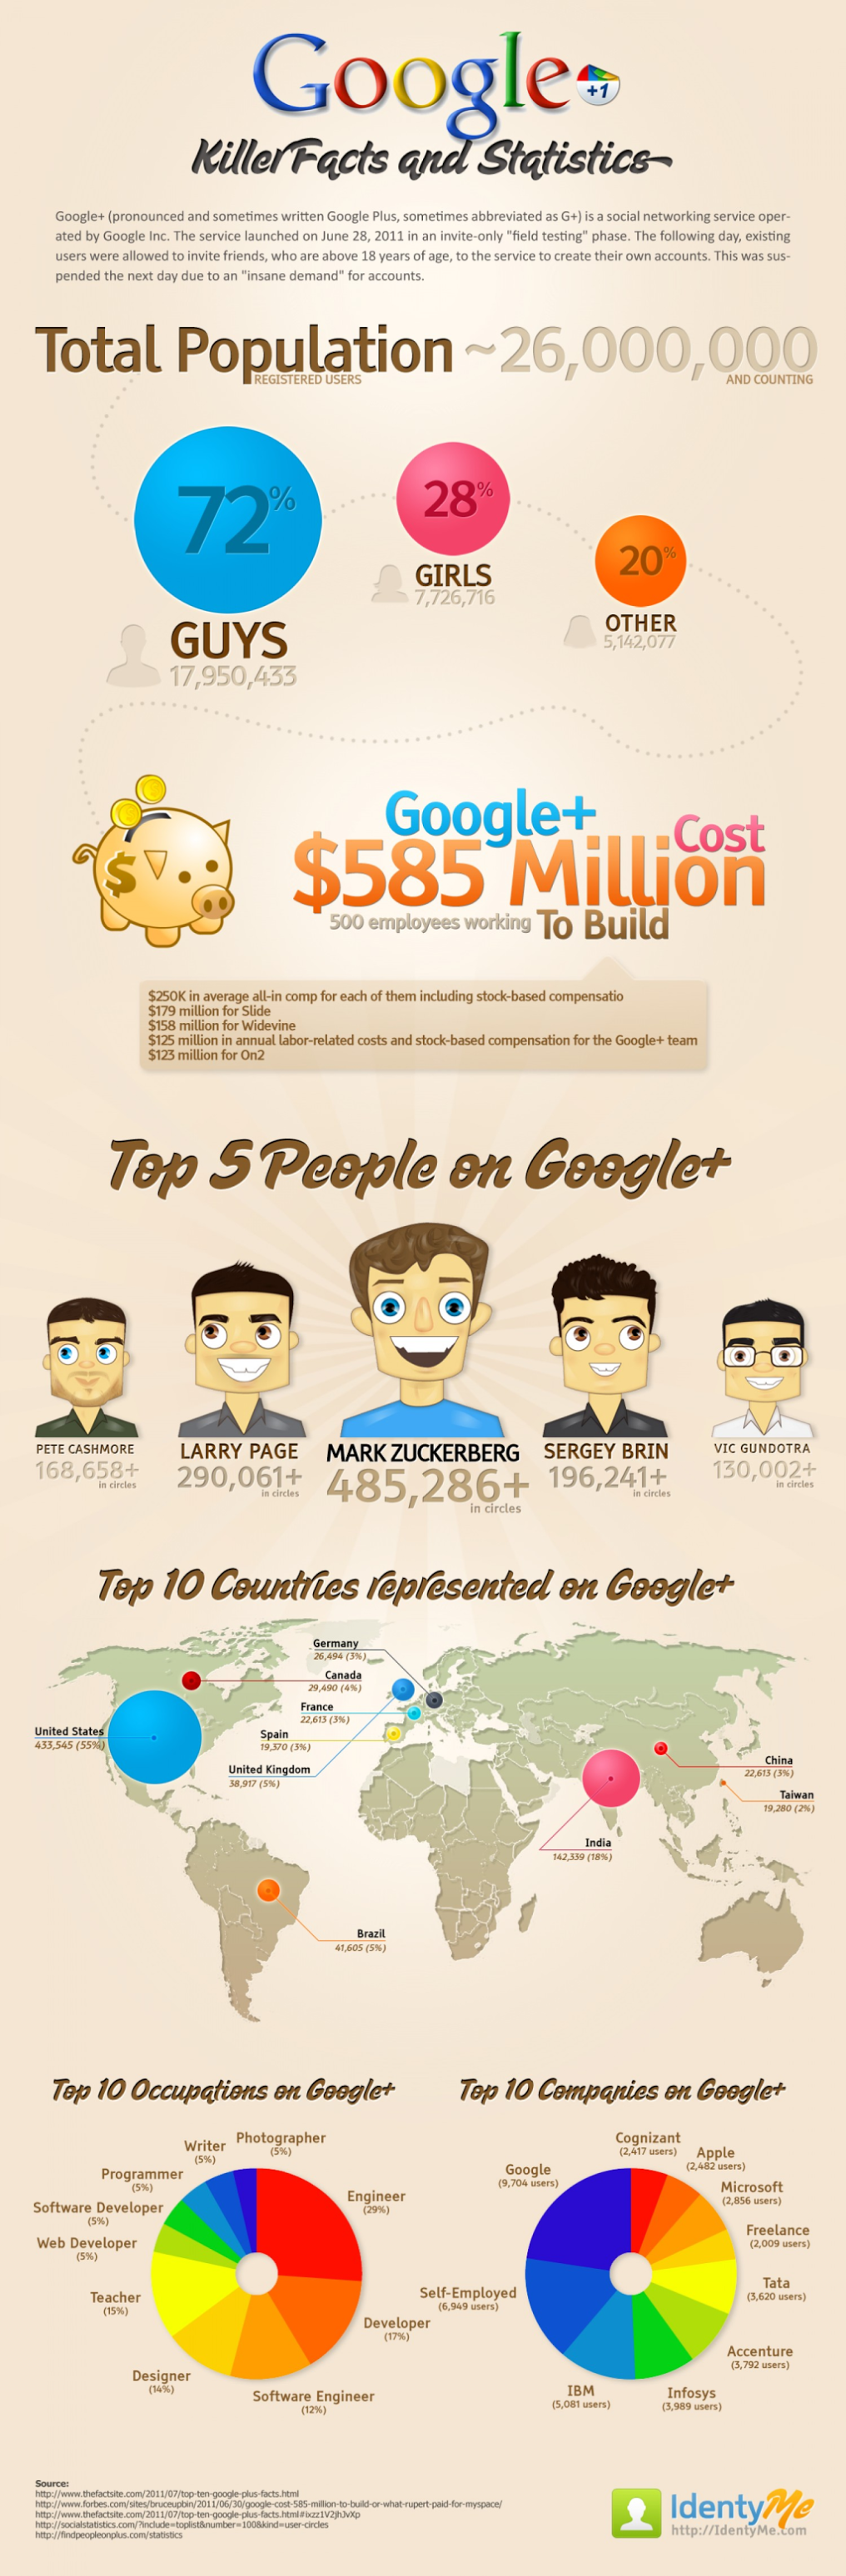 Google Plus: Killer Facts and Statistics